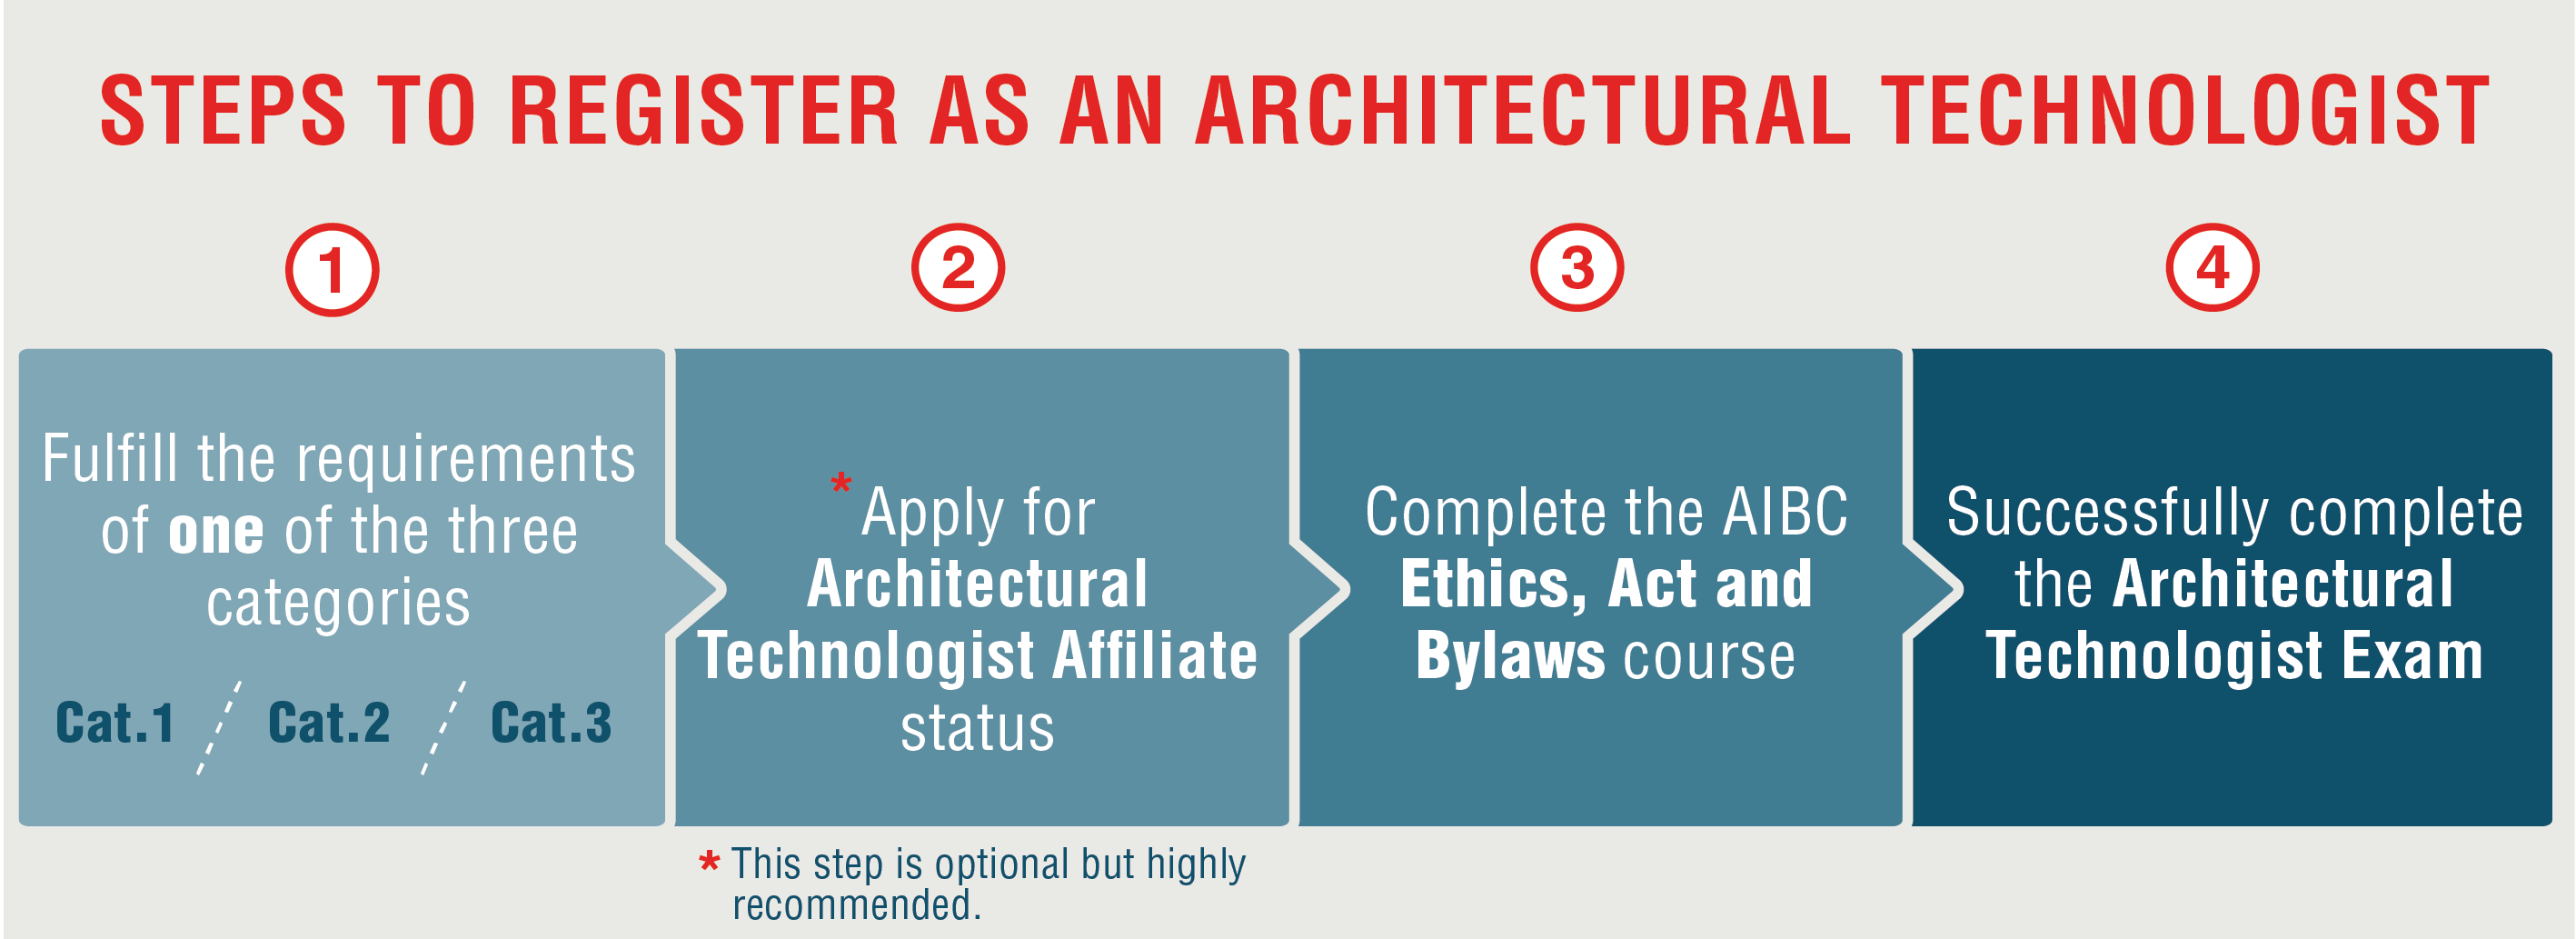 steps to register as an Architectural Technologist